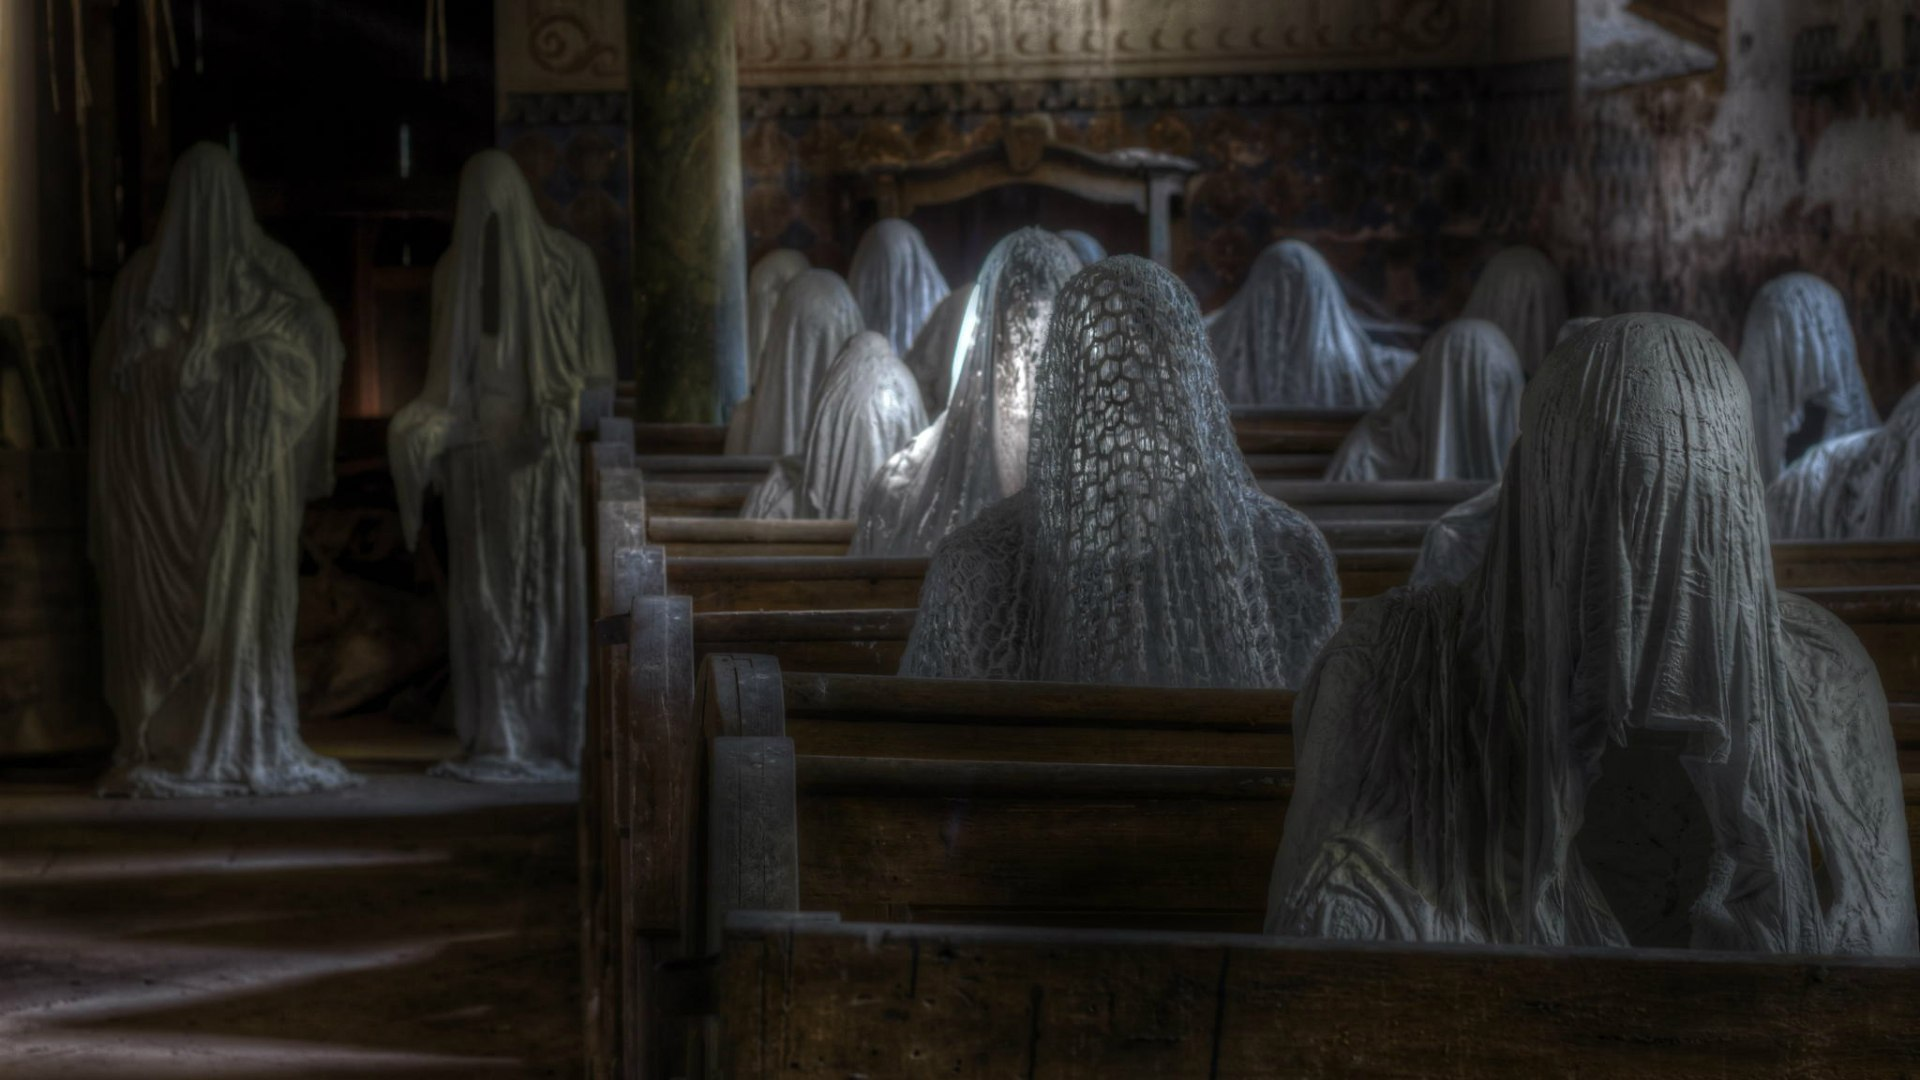 Fantasy_Ghosts_in_the_church_095060_.jpg